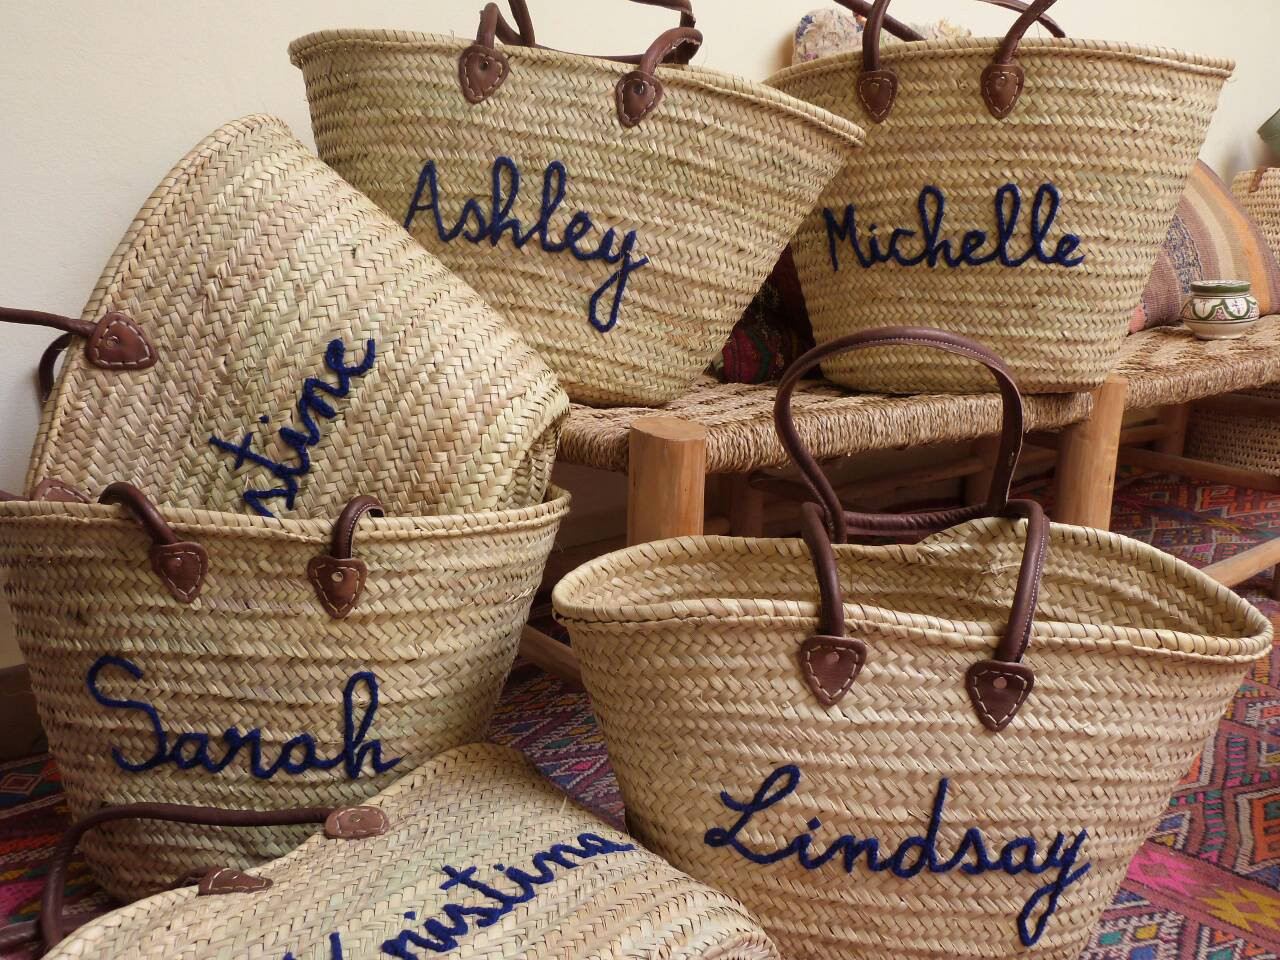 Customized Straw Bags